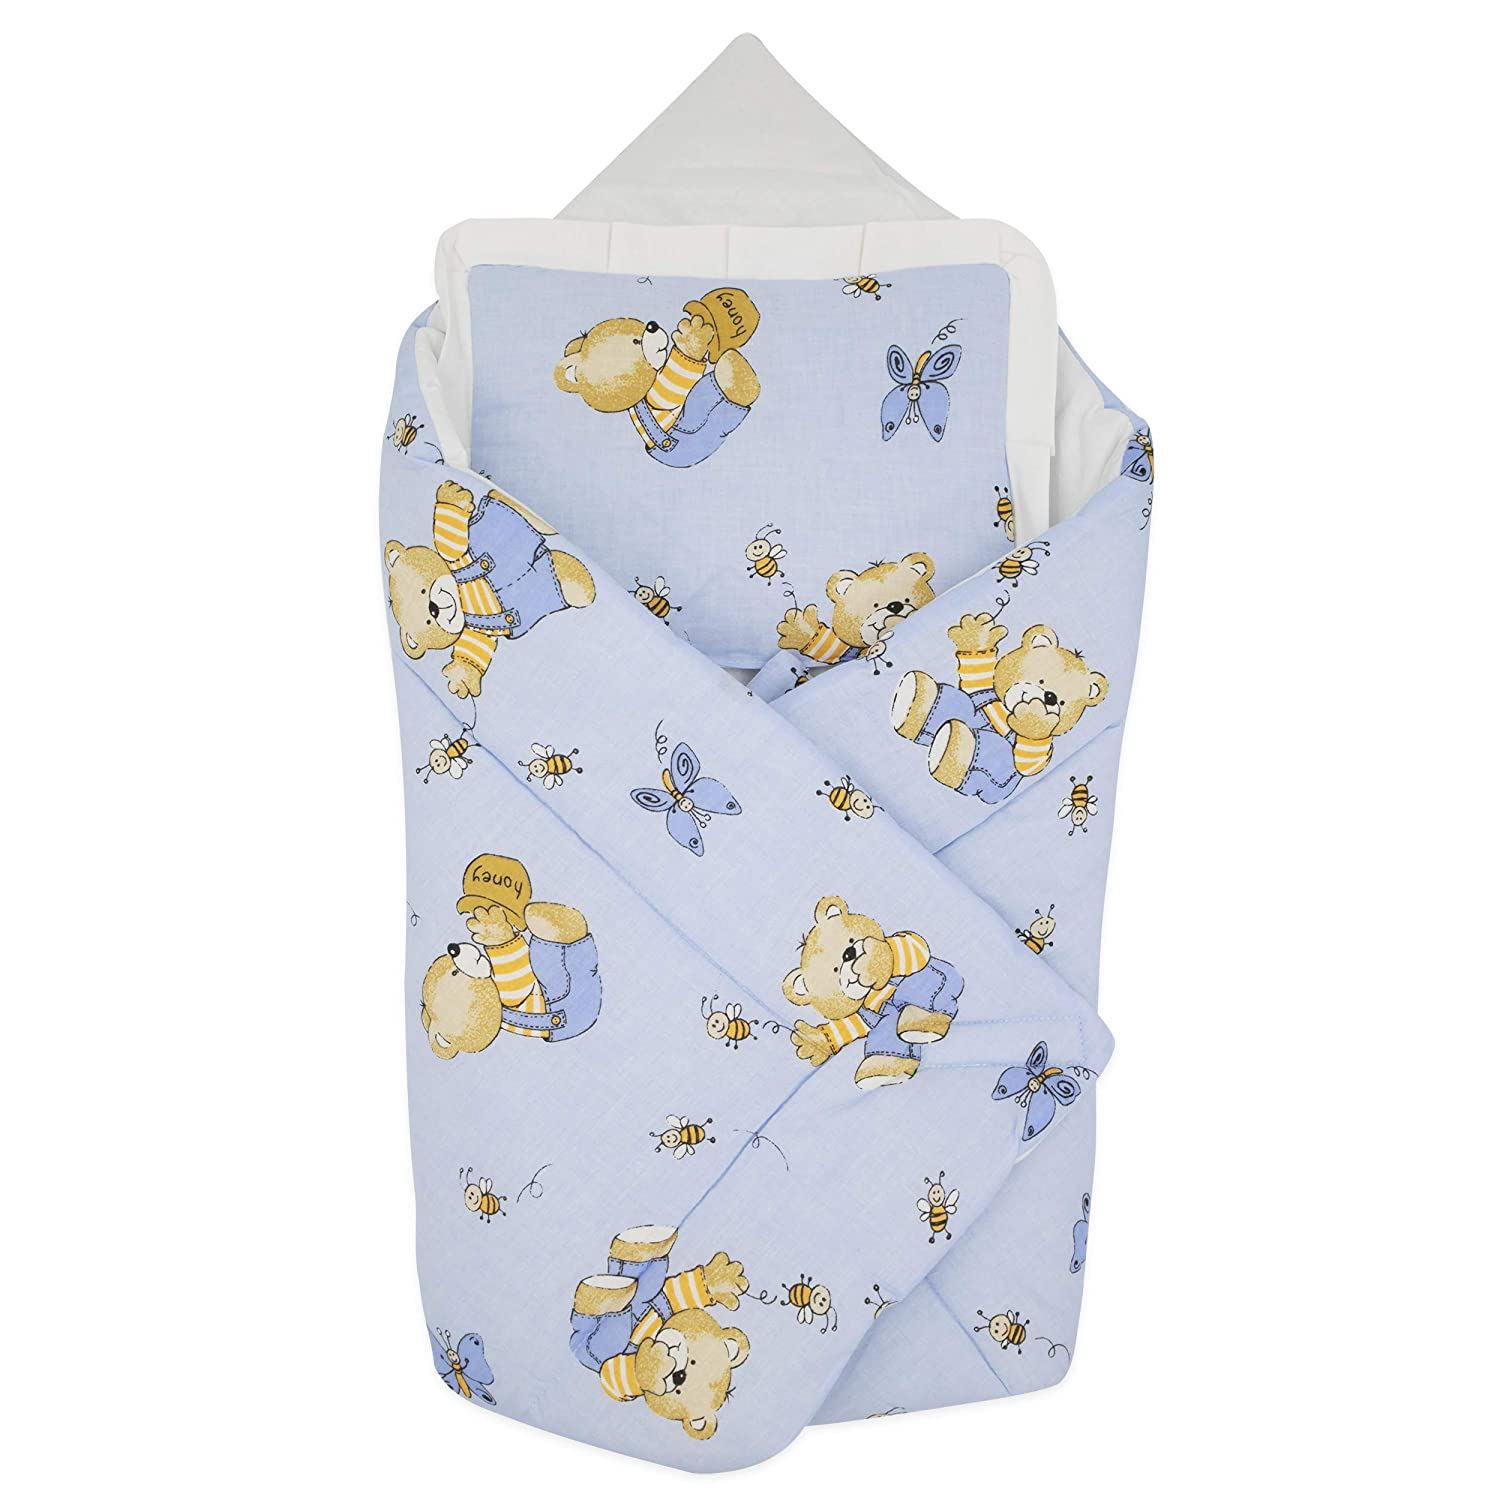 BlueberryShop Cotton Baby Swaddle Wrap Bedding Blanket with Pillow   Sleeping Bag for Newborns   Intended for Kids Aged 0-3 Months   Perfect as a Baby Shower Gift   78 x 78 cm   Grey Unicorn